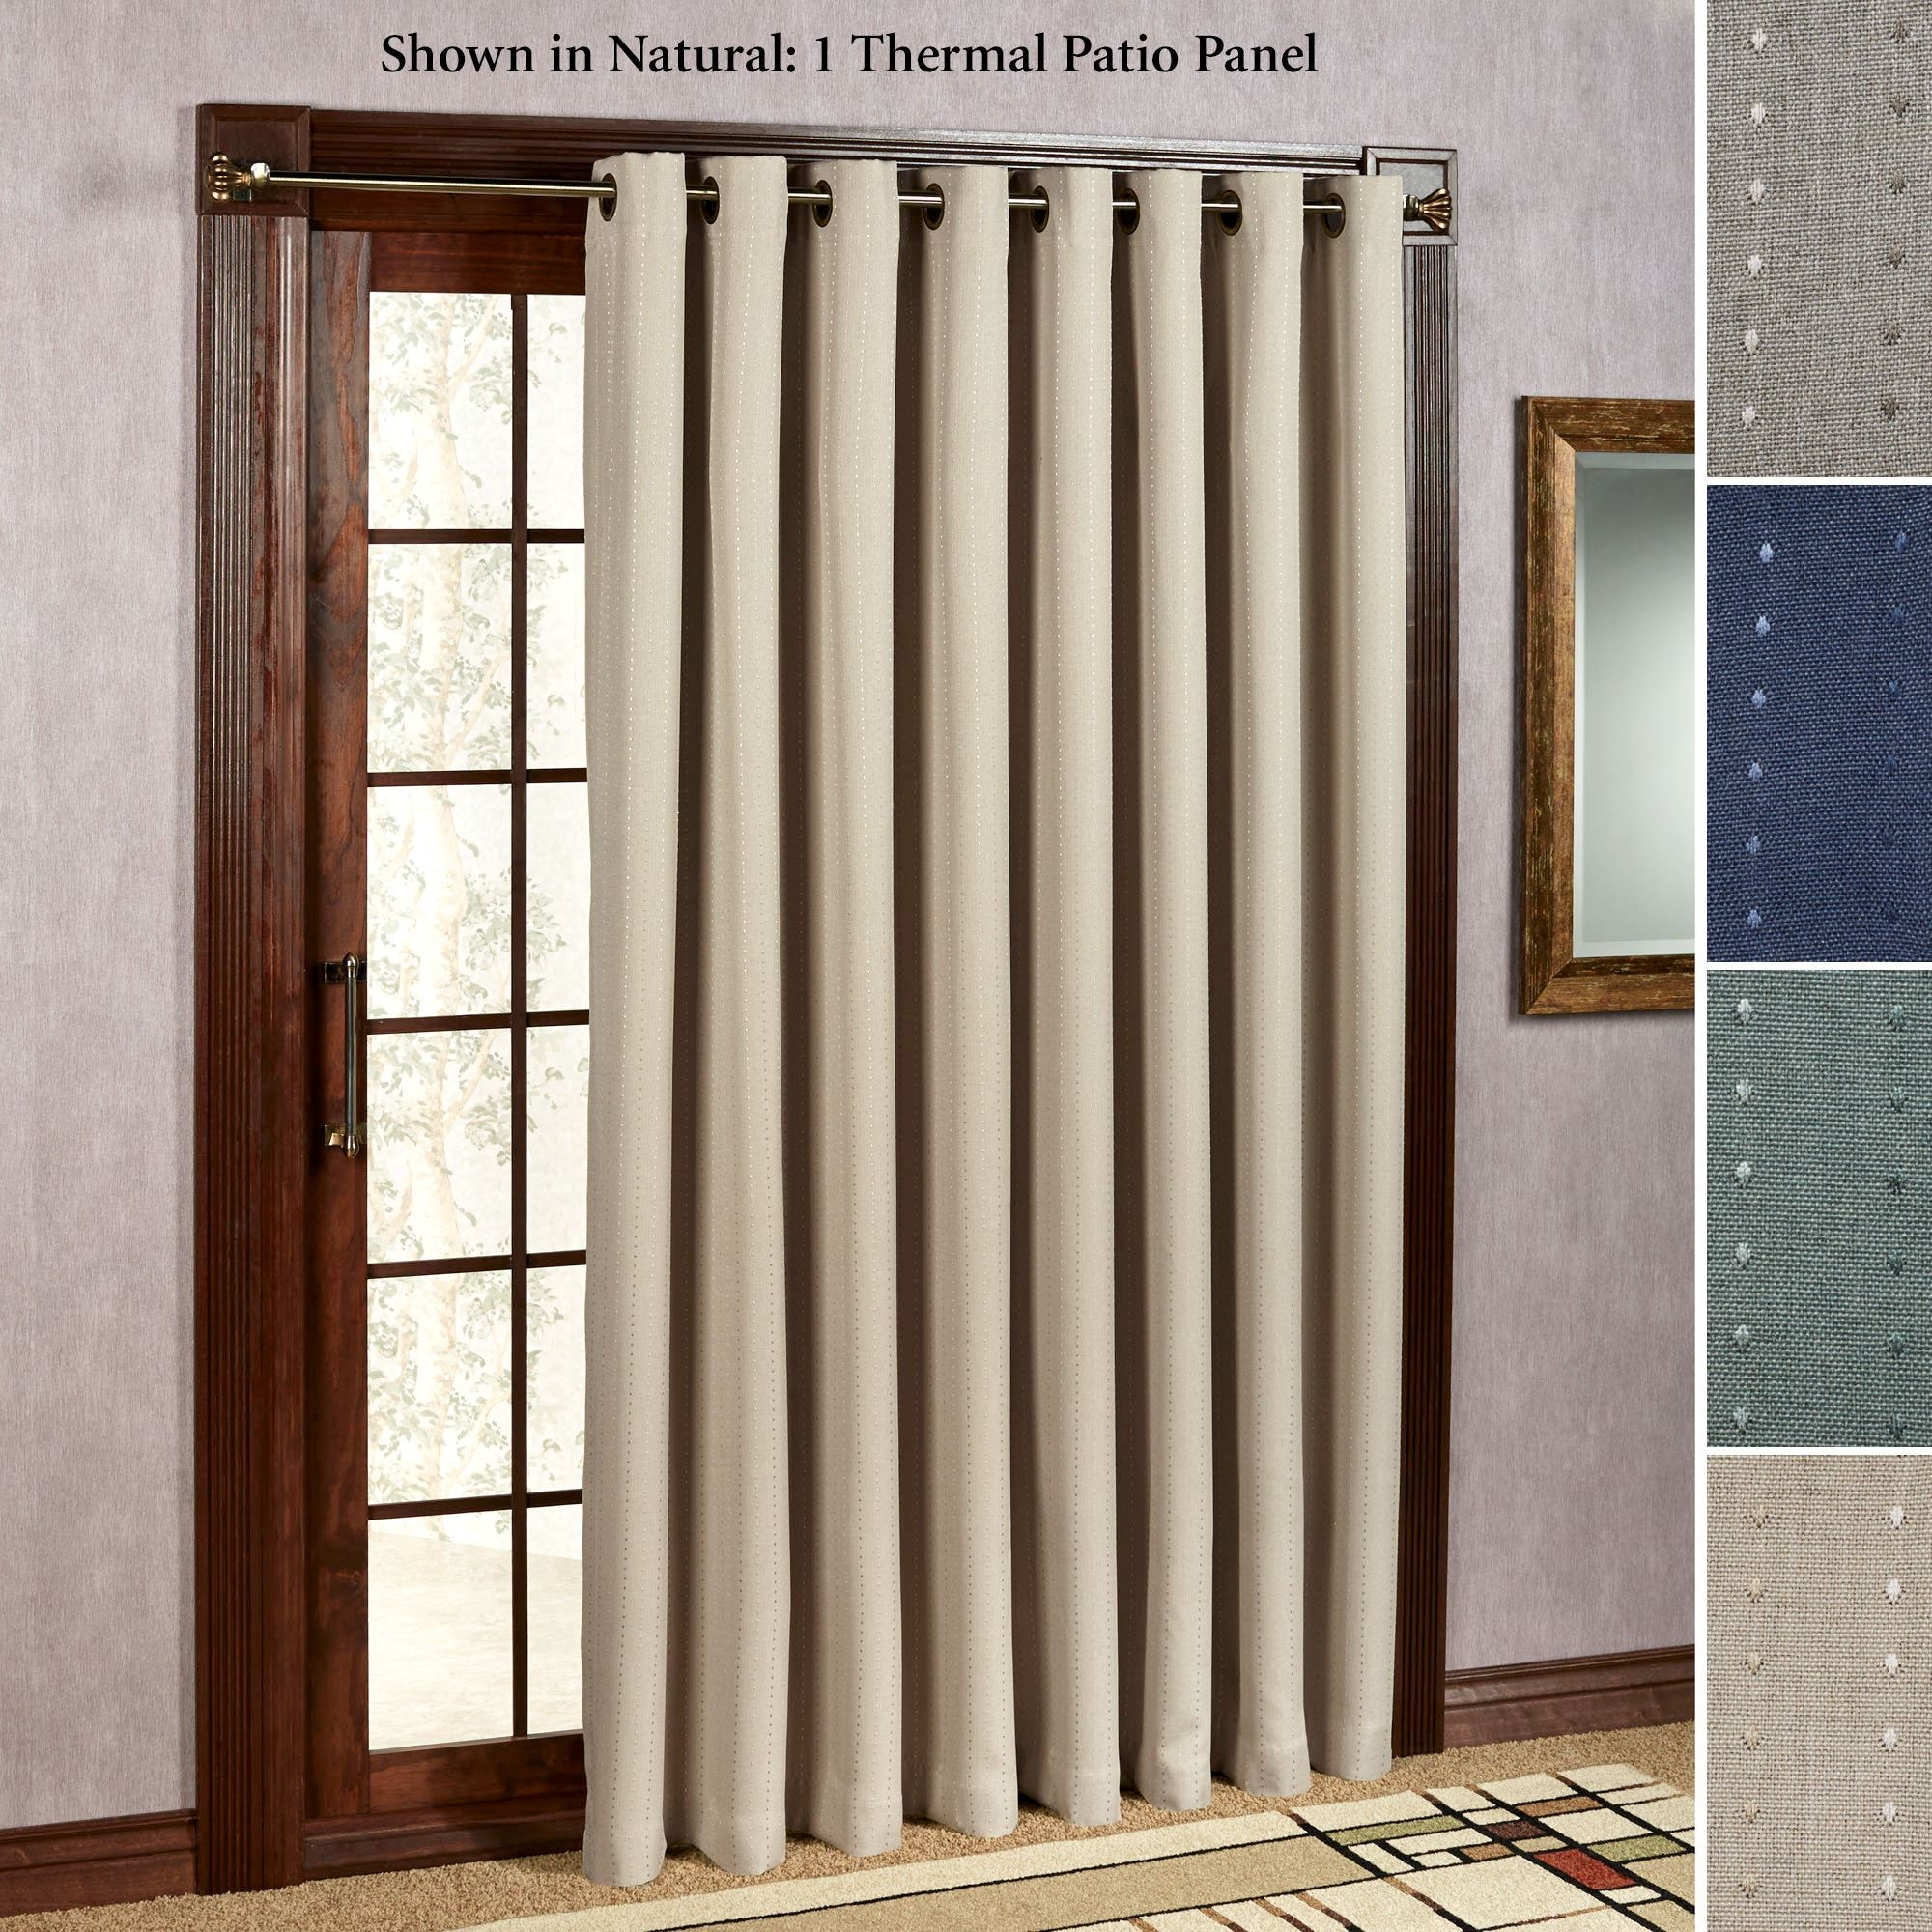 Curtains for patio doors with blinds curtain menzilperdenet for Net curtains for patio doors